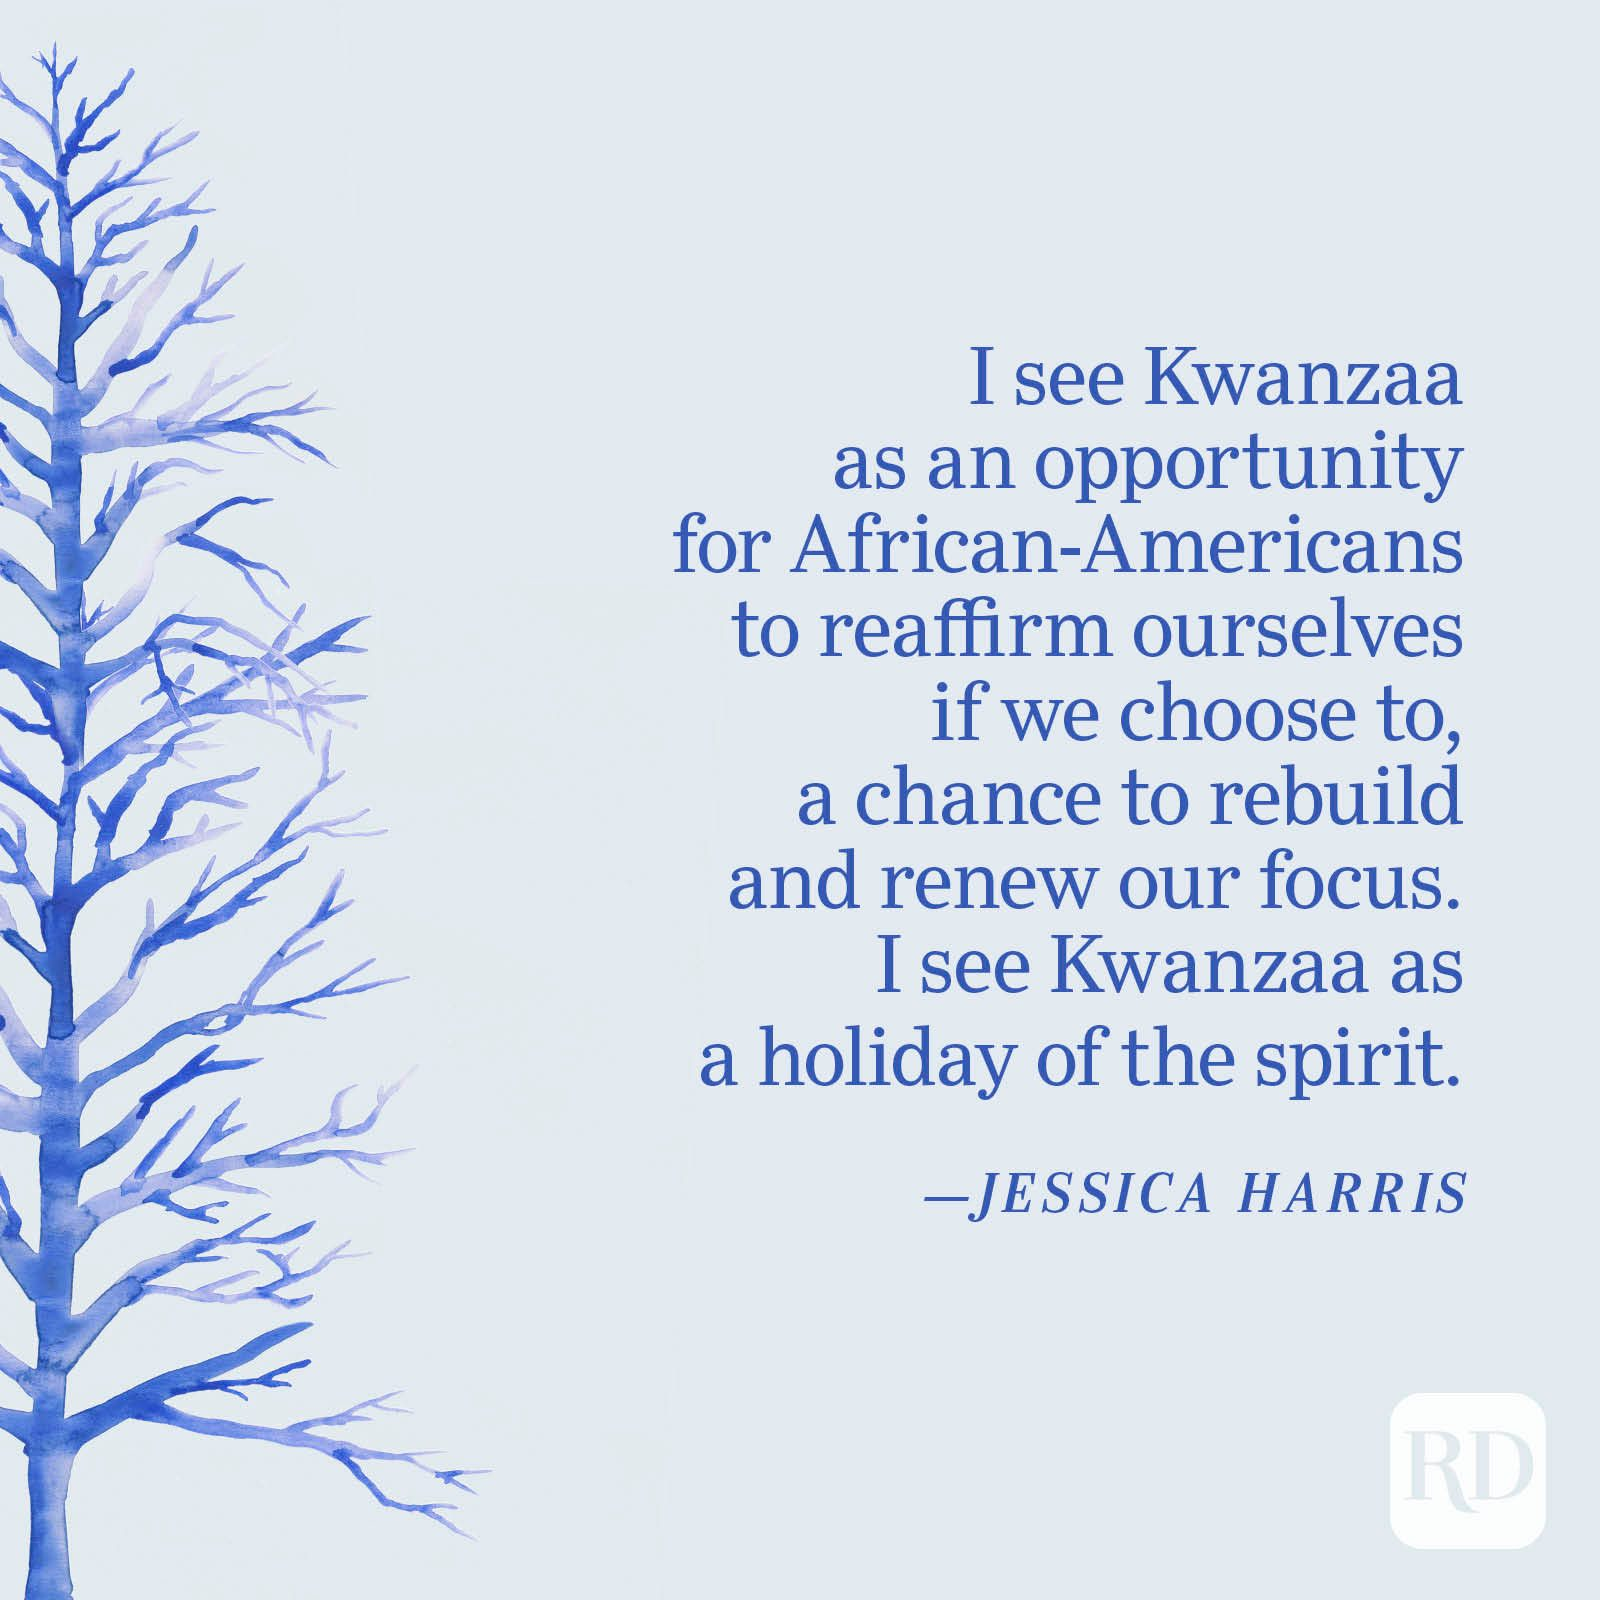 """""""I see Kwanzaa as an opportunity for African-Americans to reaffirm ourselves if we choose to, a chance to rebuild and renew our focus. I see Kwanzaa as a holiday of the spirit."""" —Jessica Harris"""